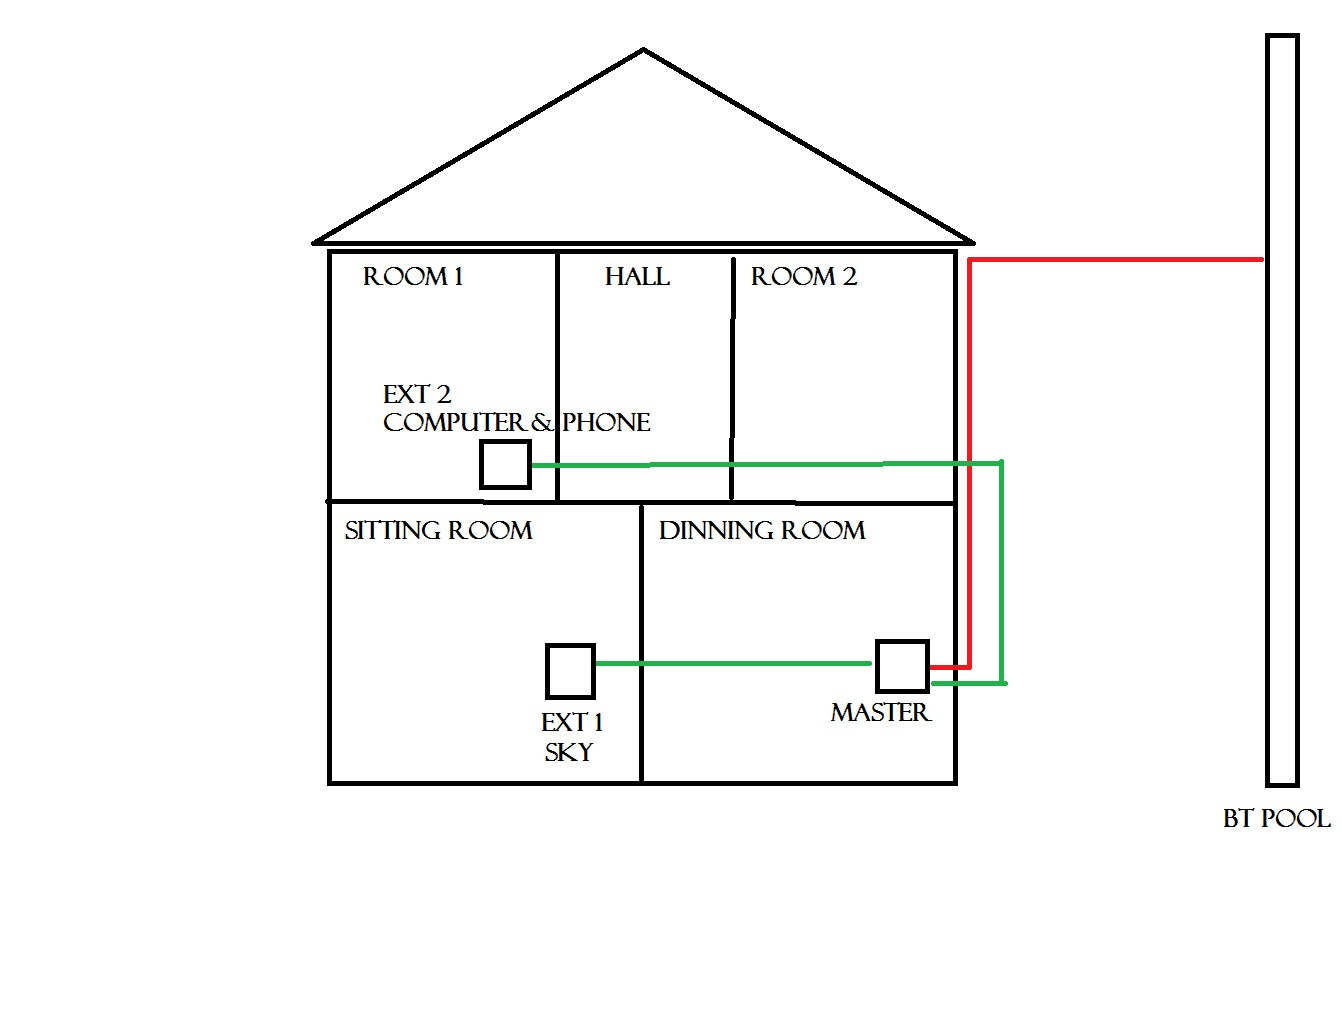 10051i710794AB7384FD3C?v=1.0 bt infinity, need help on how the bt enginer will btcare bt infinity master socket wiring diagram at bayanpartner.co